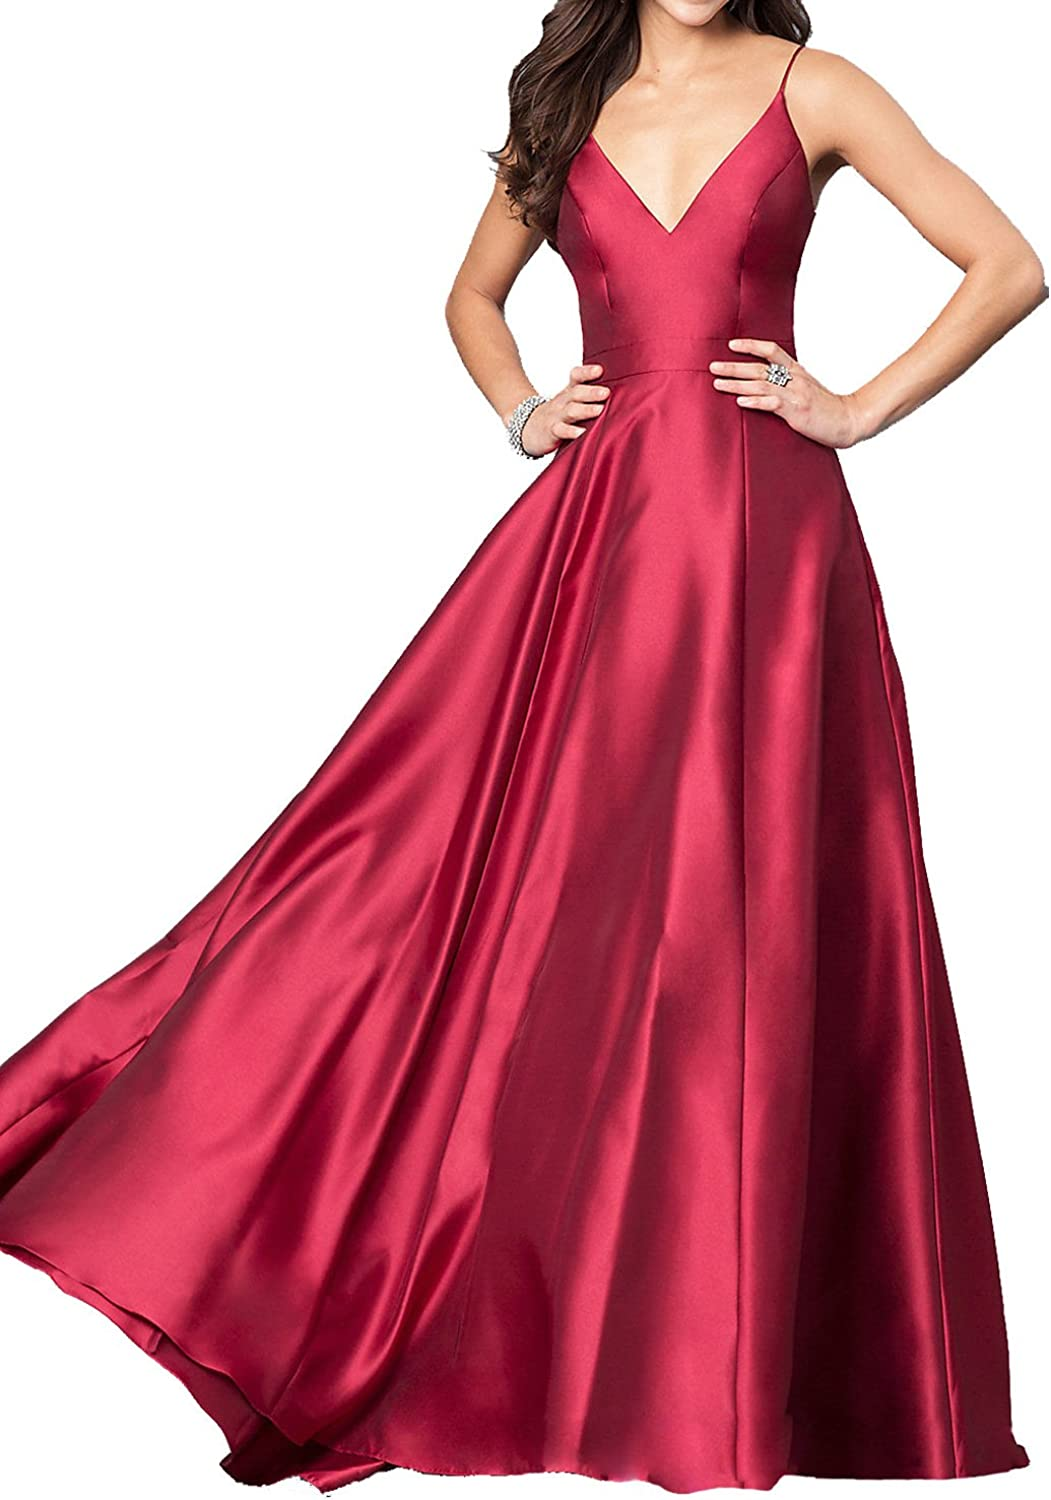 LL Bridal Women's V Neck A Line Spaghetti Strap Evening Gown 2018 Long Prom Formal Dresses LL17